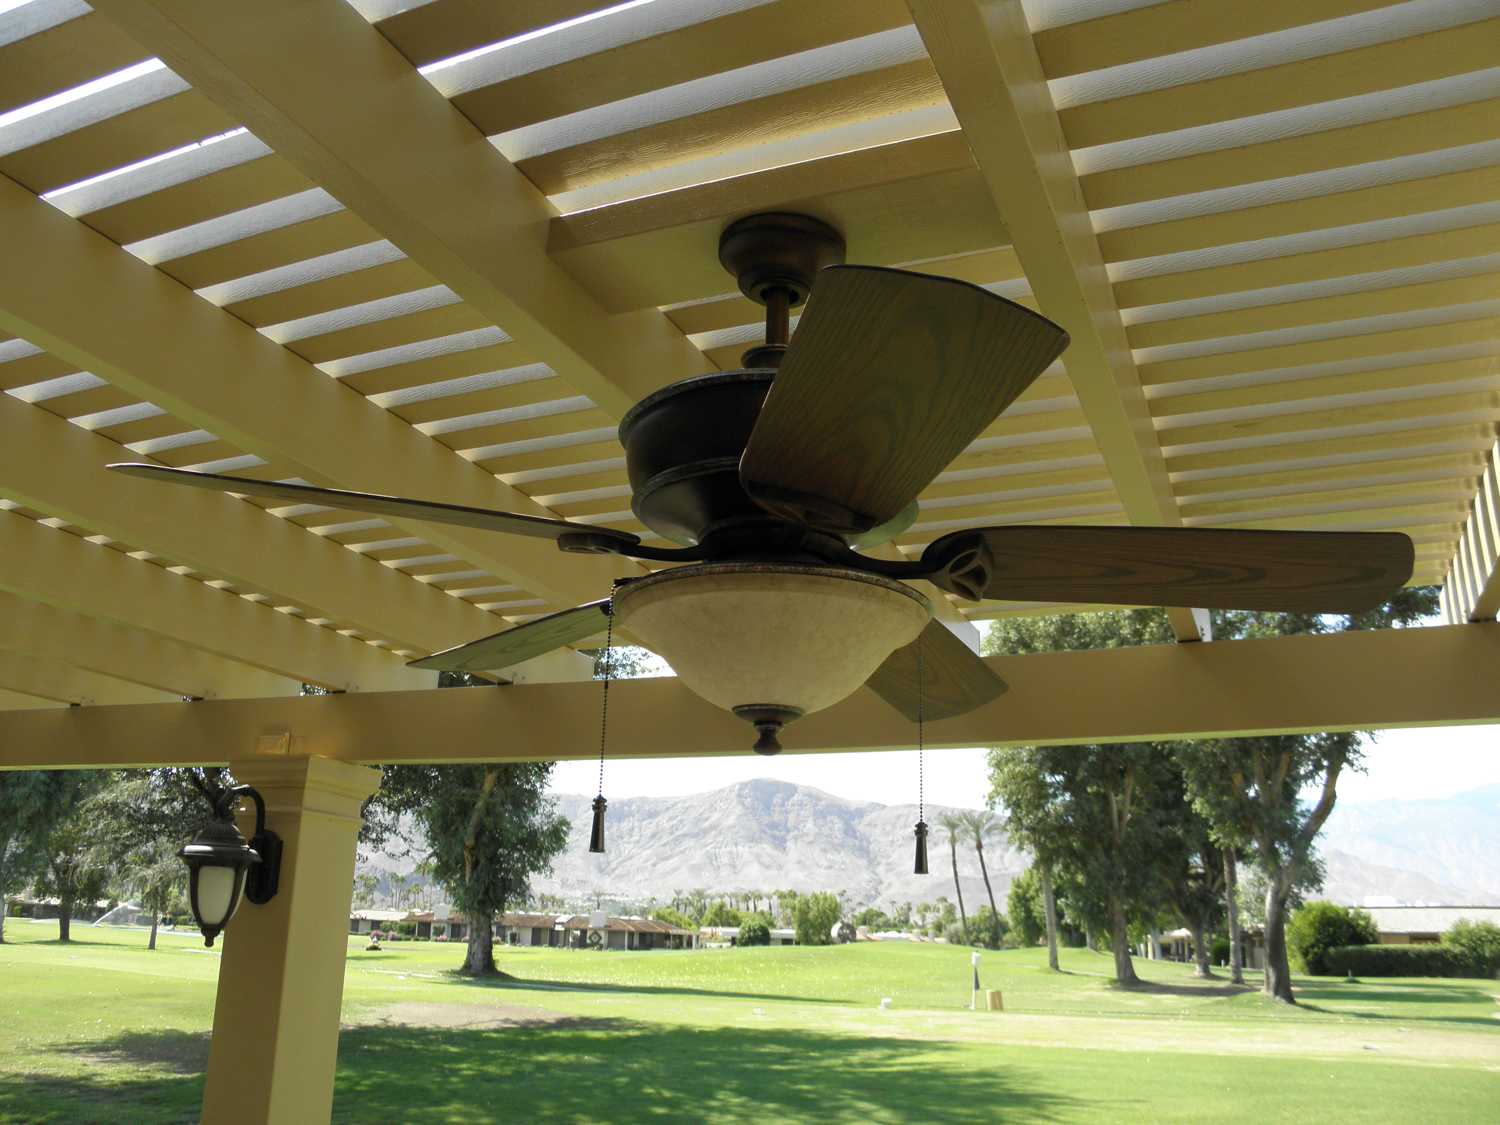 Outdoor Fan With Light on Lattice Patio Cover, Indian Wells 92210